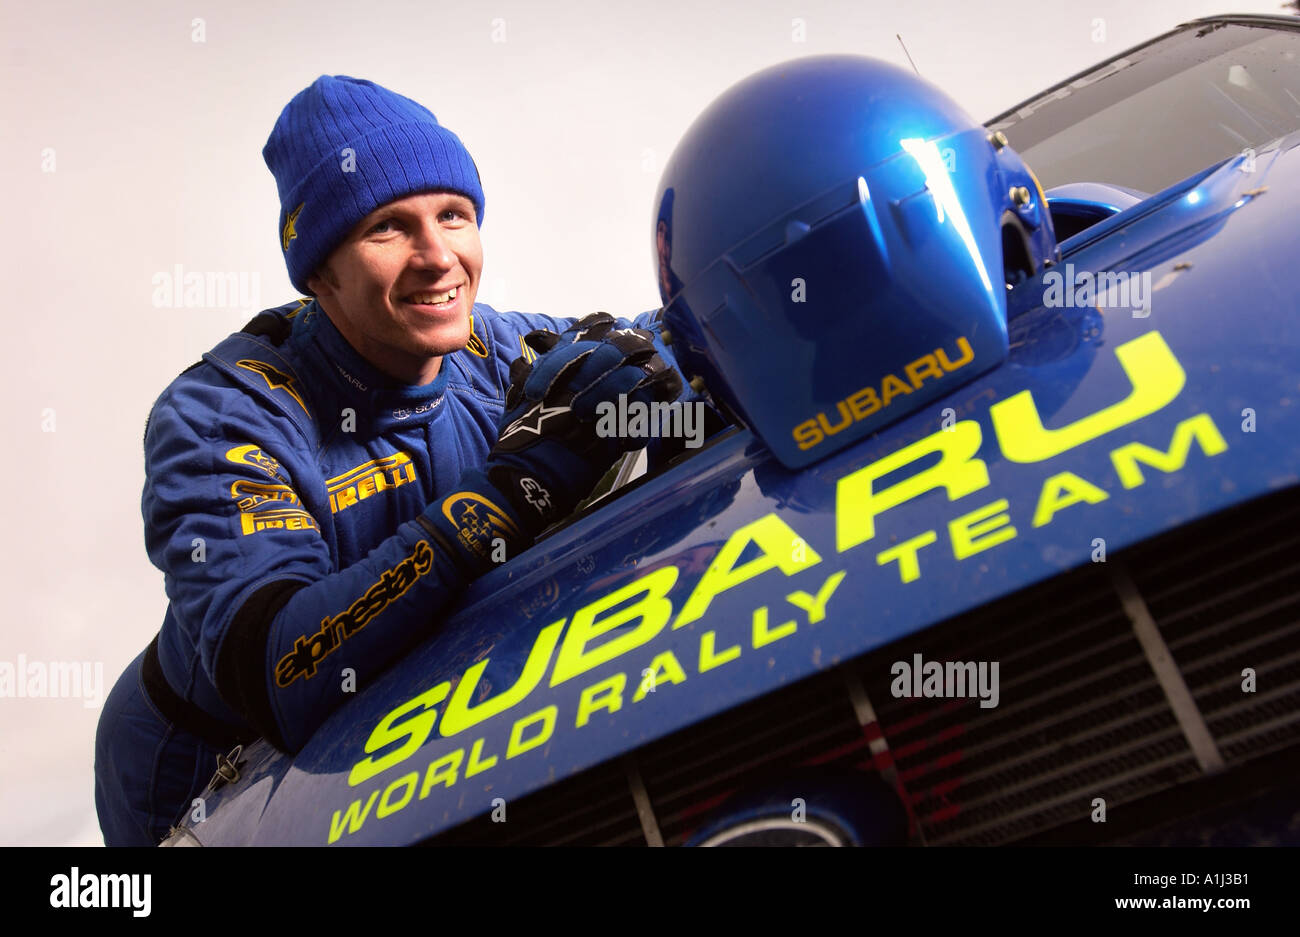 SUBARU RALLY DRIVER PETTER SOLBERG DURING TESTING IN WALES BEFORE THE RALLY OF BRITAIN - Stock Image